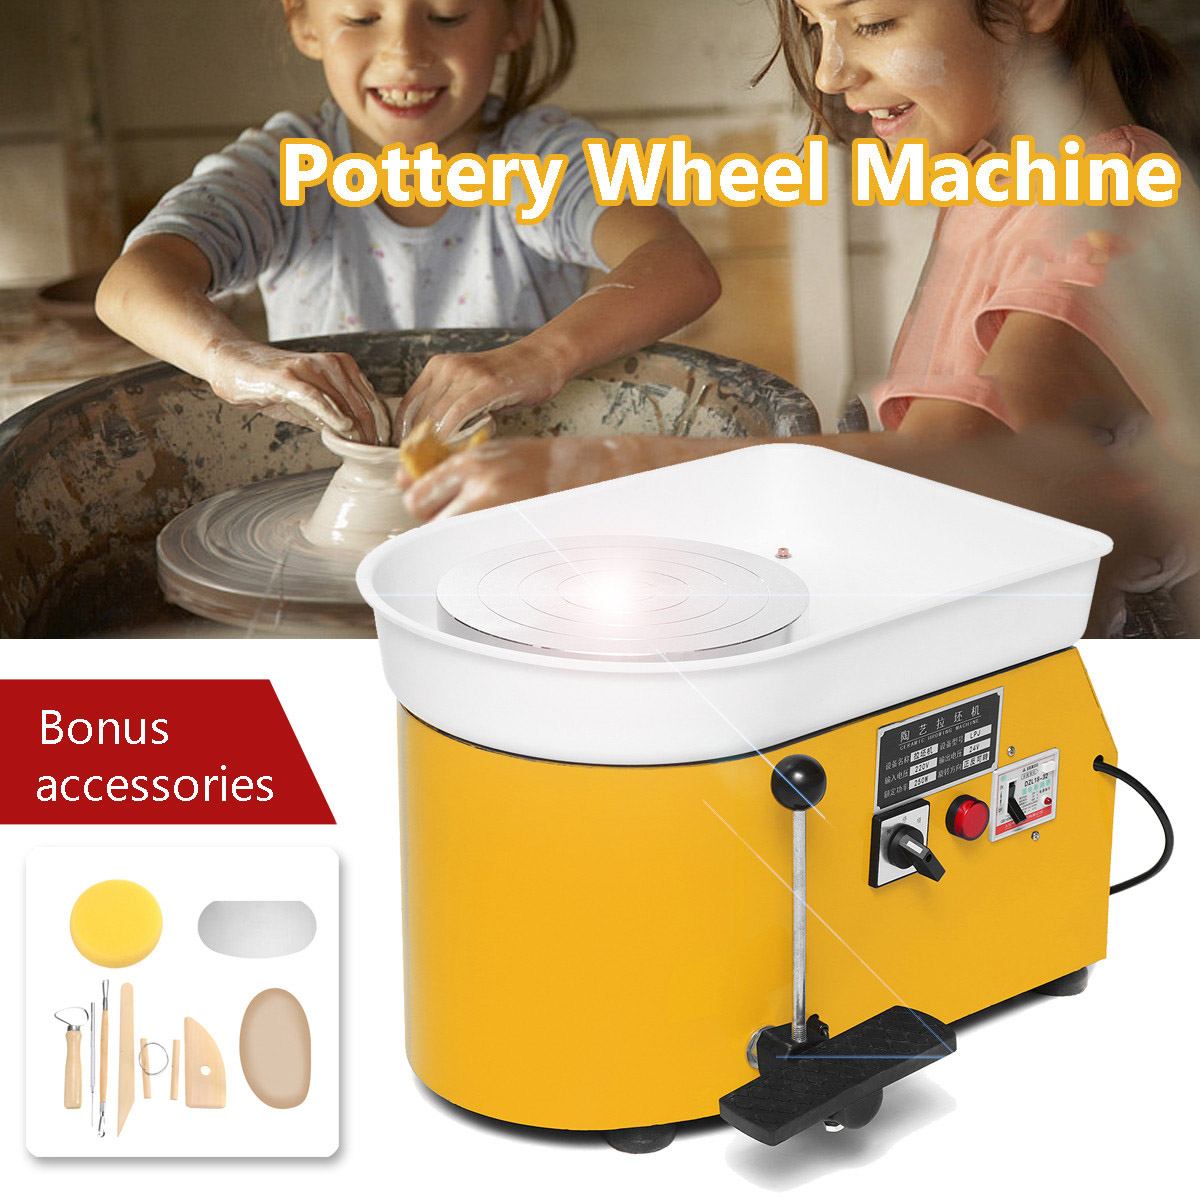 3 Colors Pottery Forming Machine 110V/220V Electric Pottery Wheel DIY Clay Tool with Tray For Ceramic Work Art Craft 250W/350W